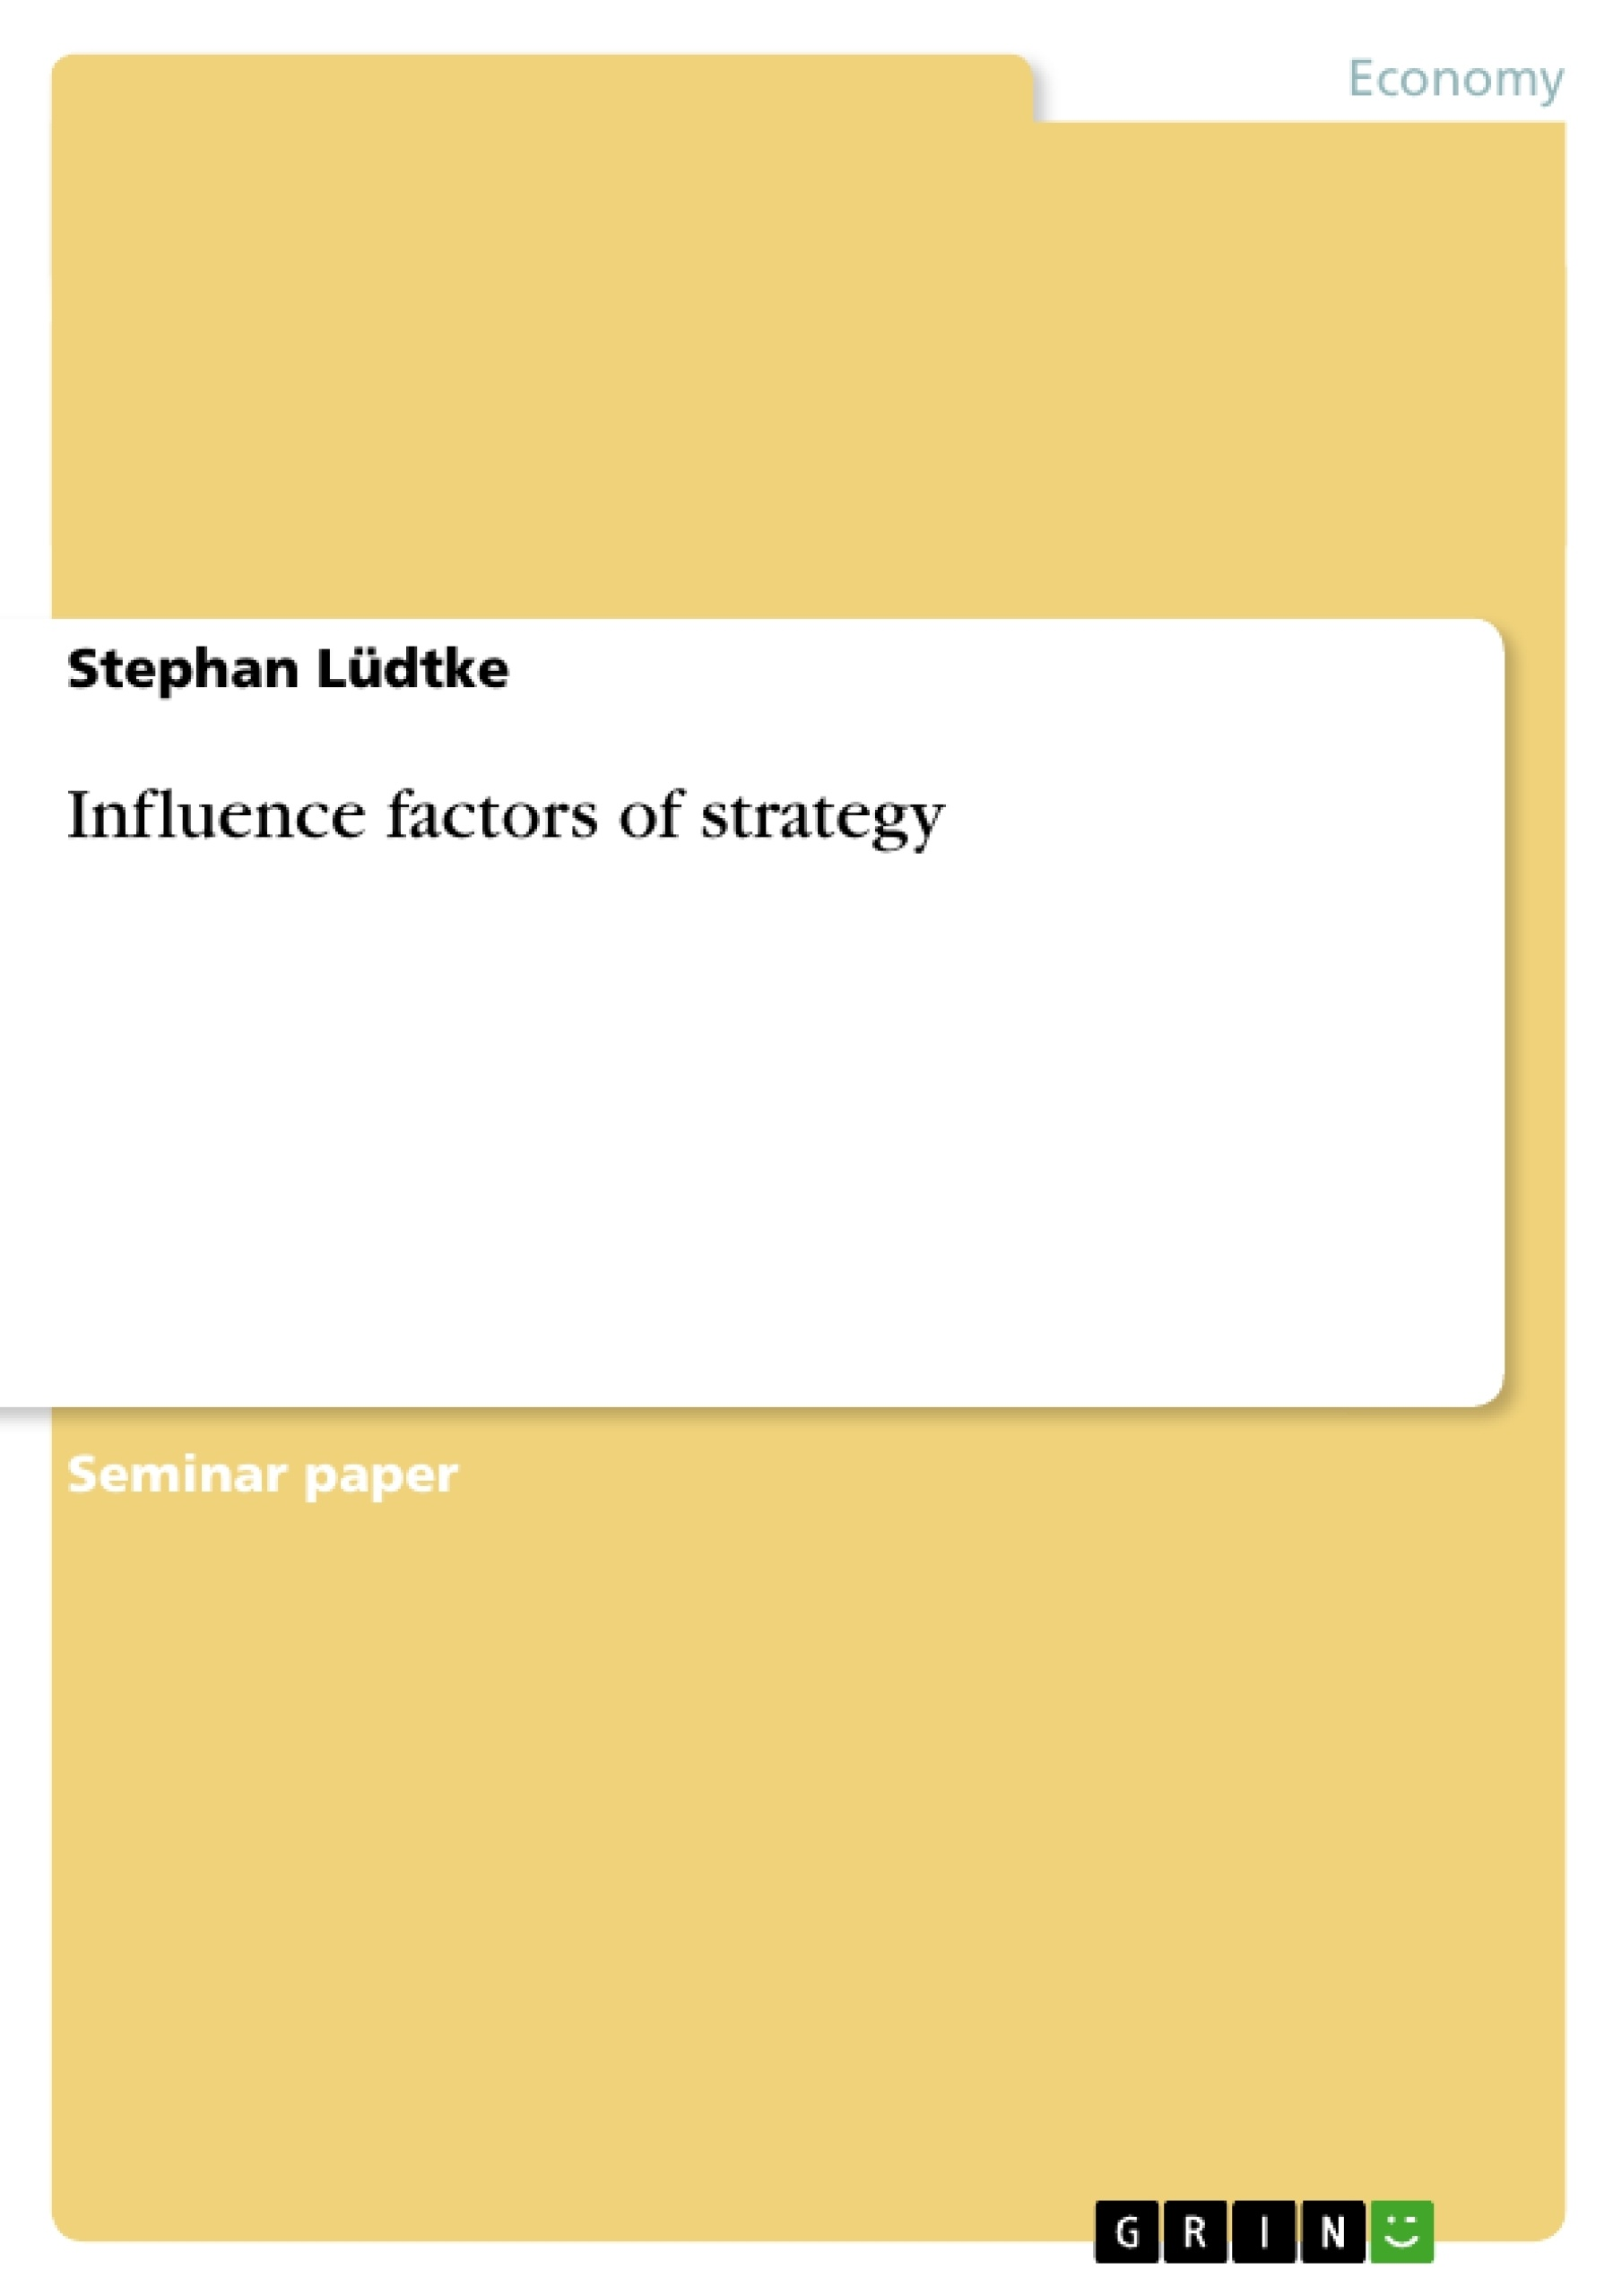 Title: Influence factors of strategy